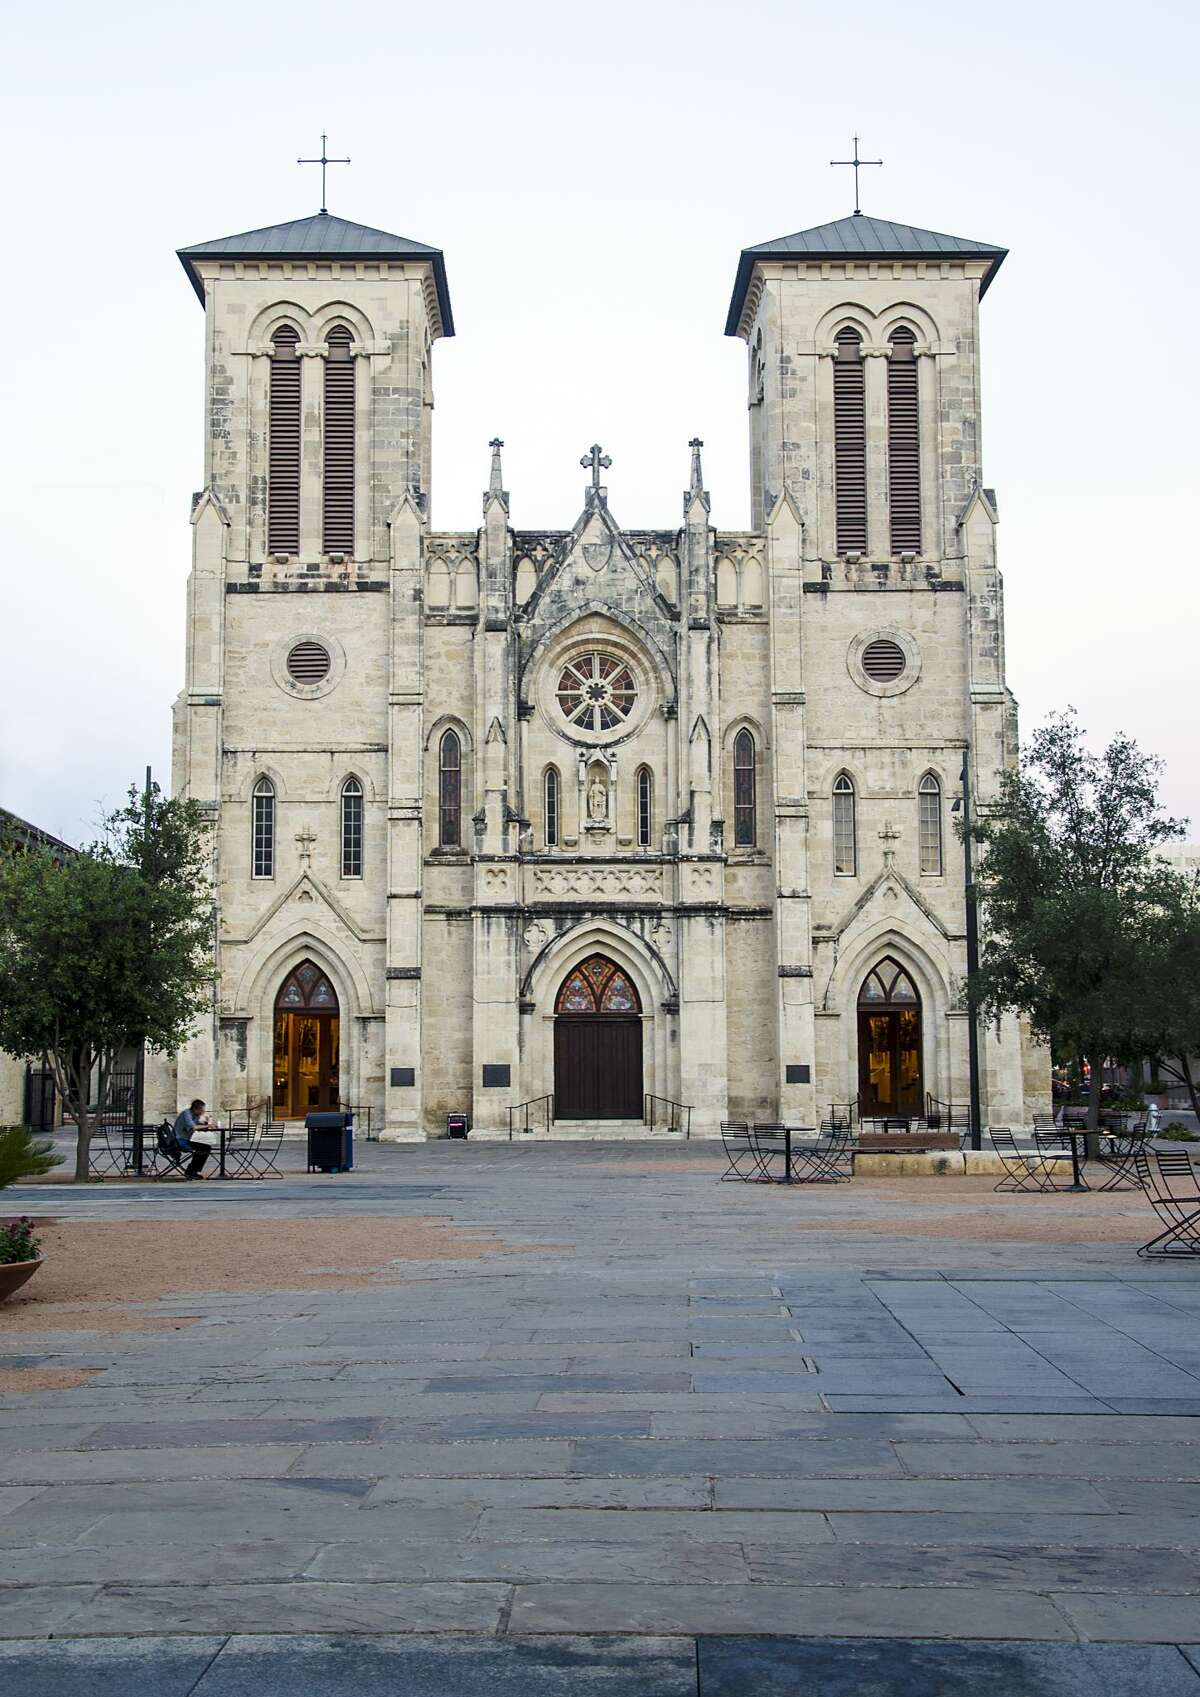 The San Fernando Cathedral: Built in 1750, the San Fernando Cathedral is the oldest church in Texas with a rich history. Visitors have reported seeing shadowy figures and bright orbs appearing in photographs. Some have even said they saw a man dressed in monk-like robes near the back of the cathedral, and a white stallion galloping across the front.